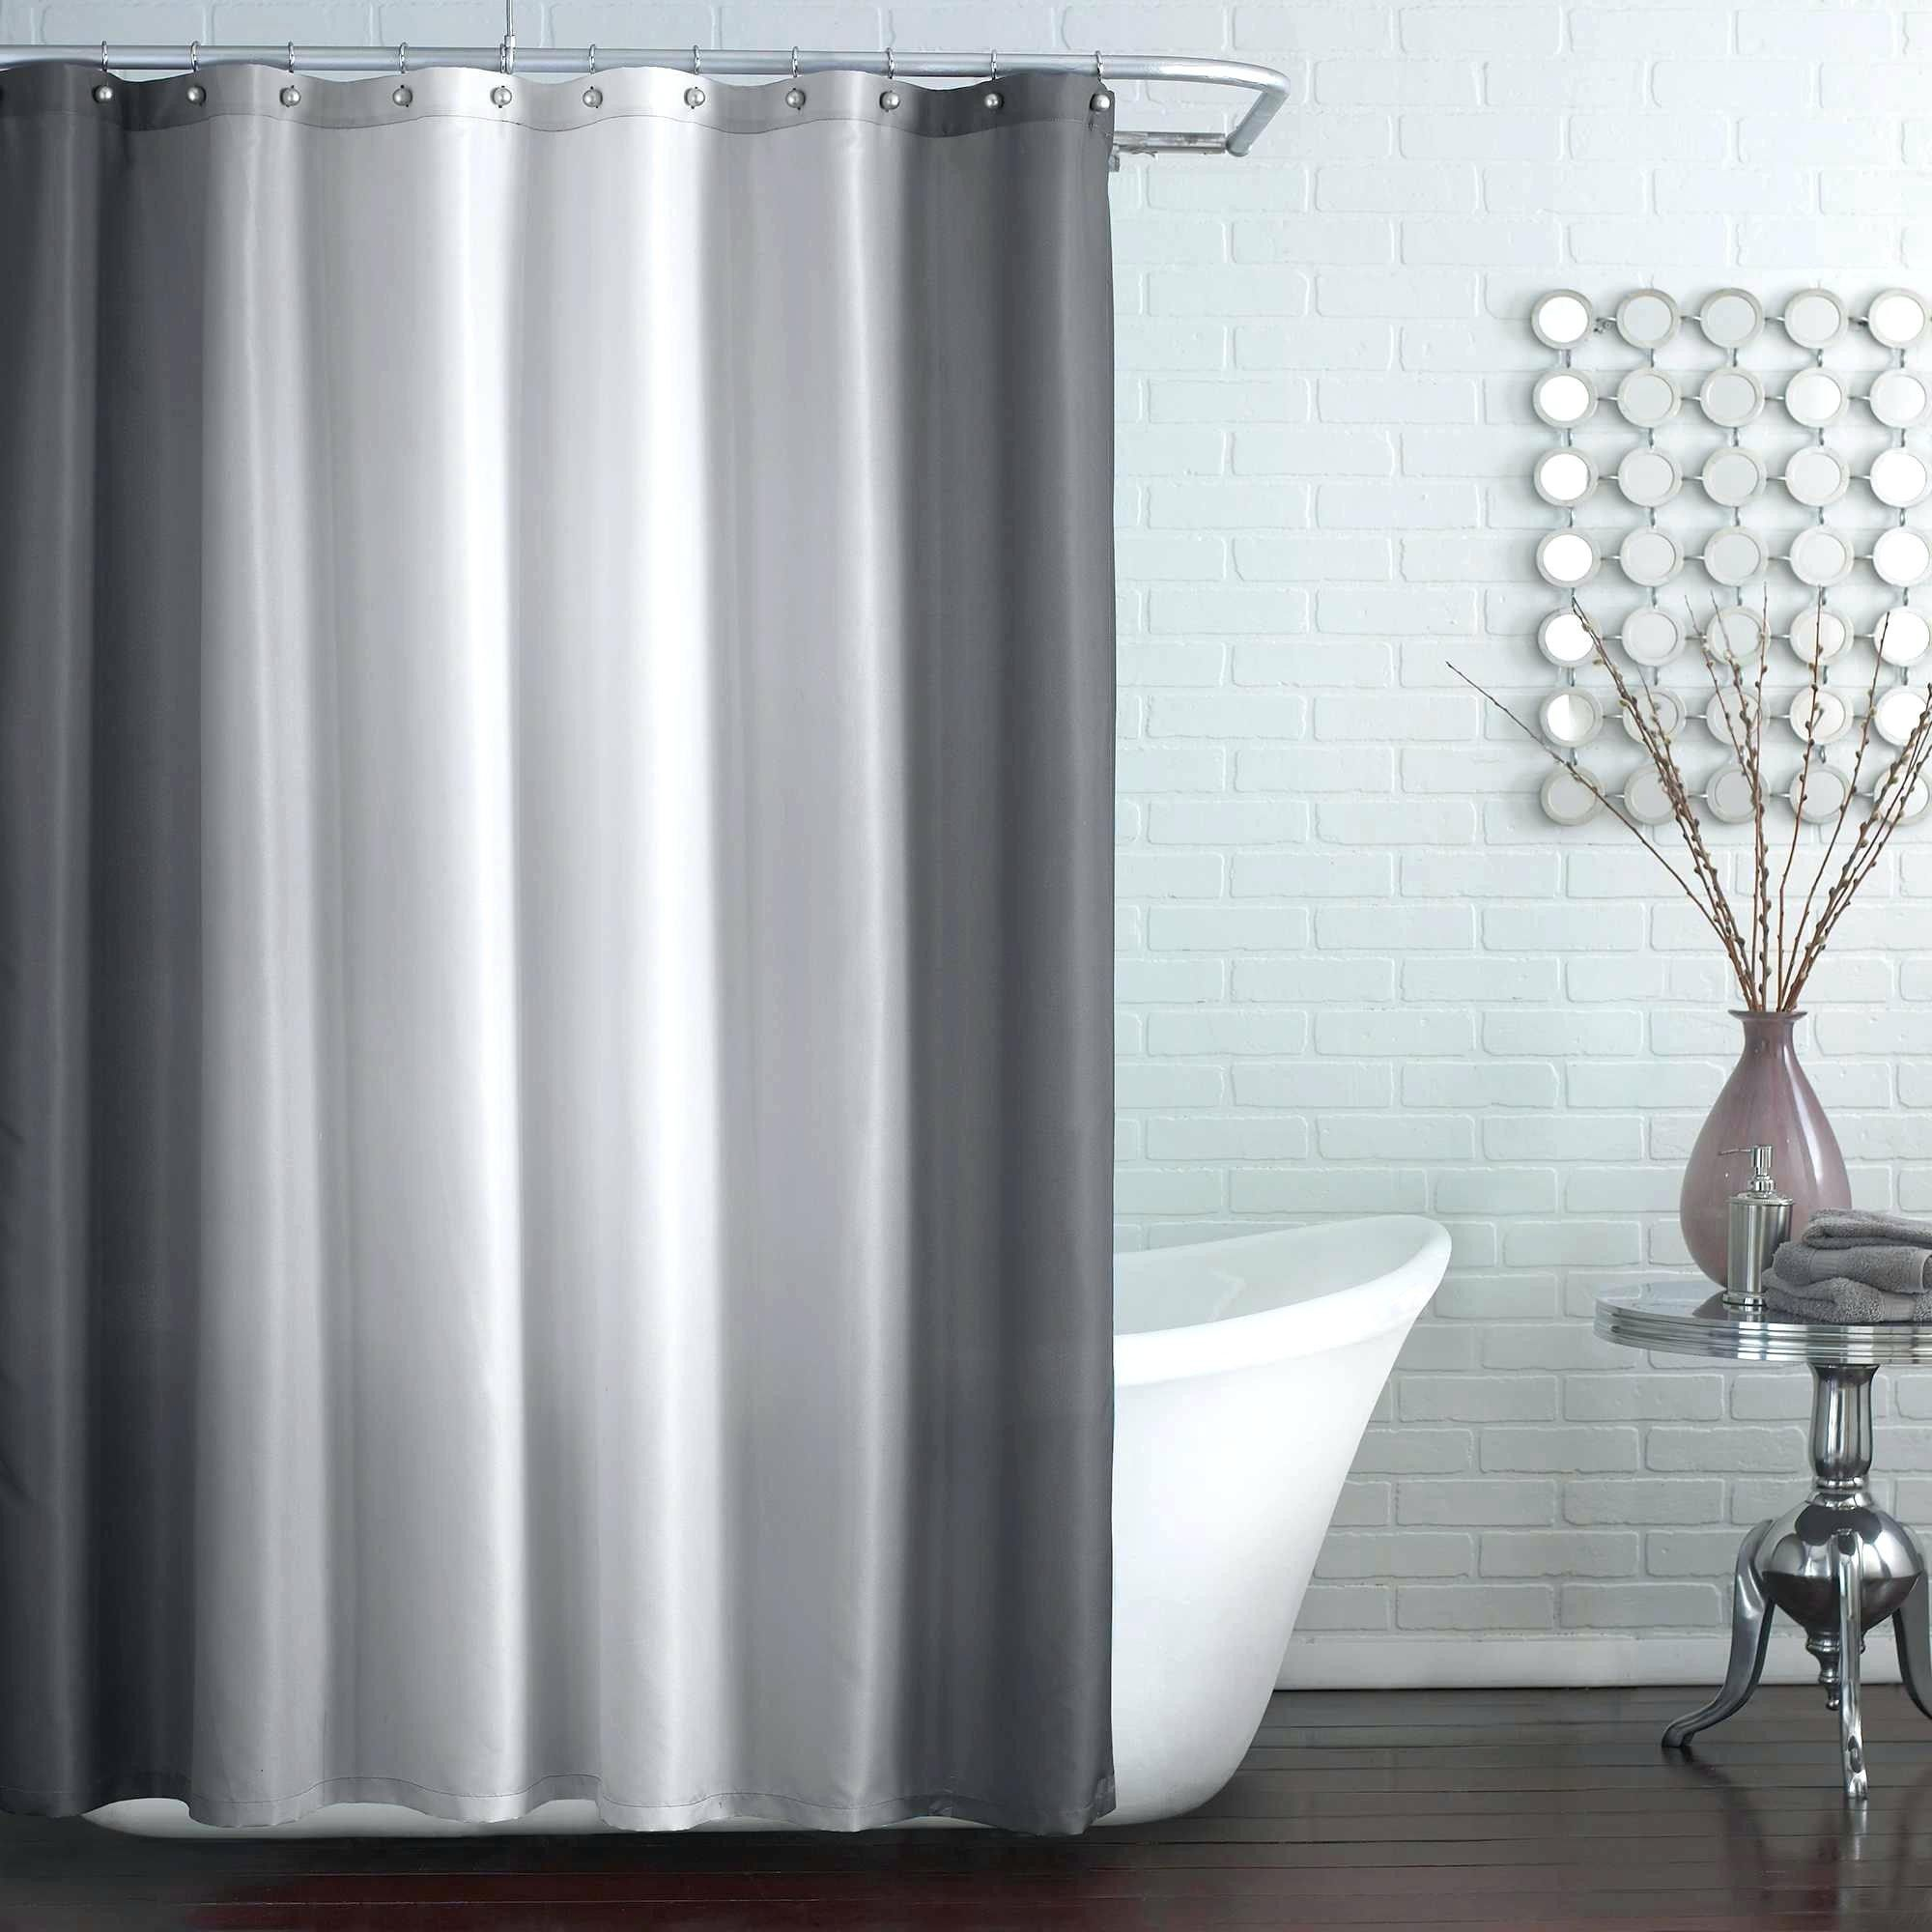 Awesome Extra Wide Shower Curtain Liner